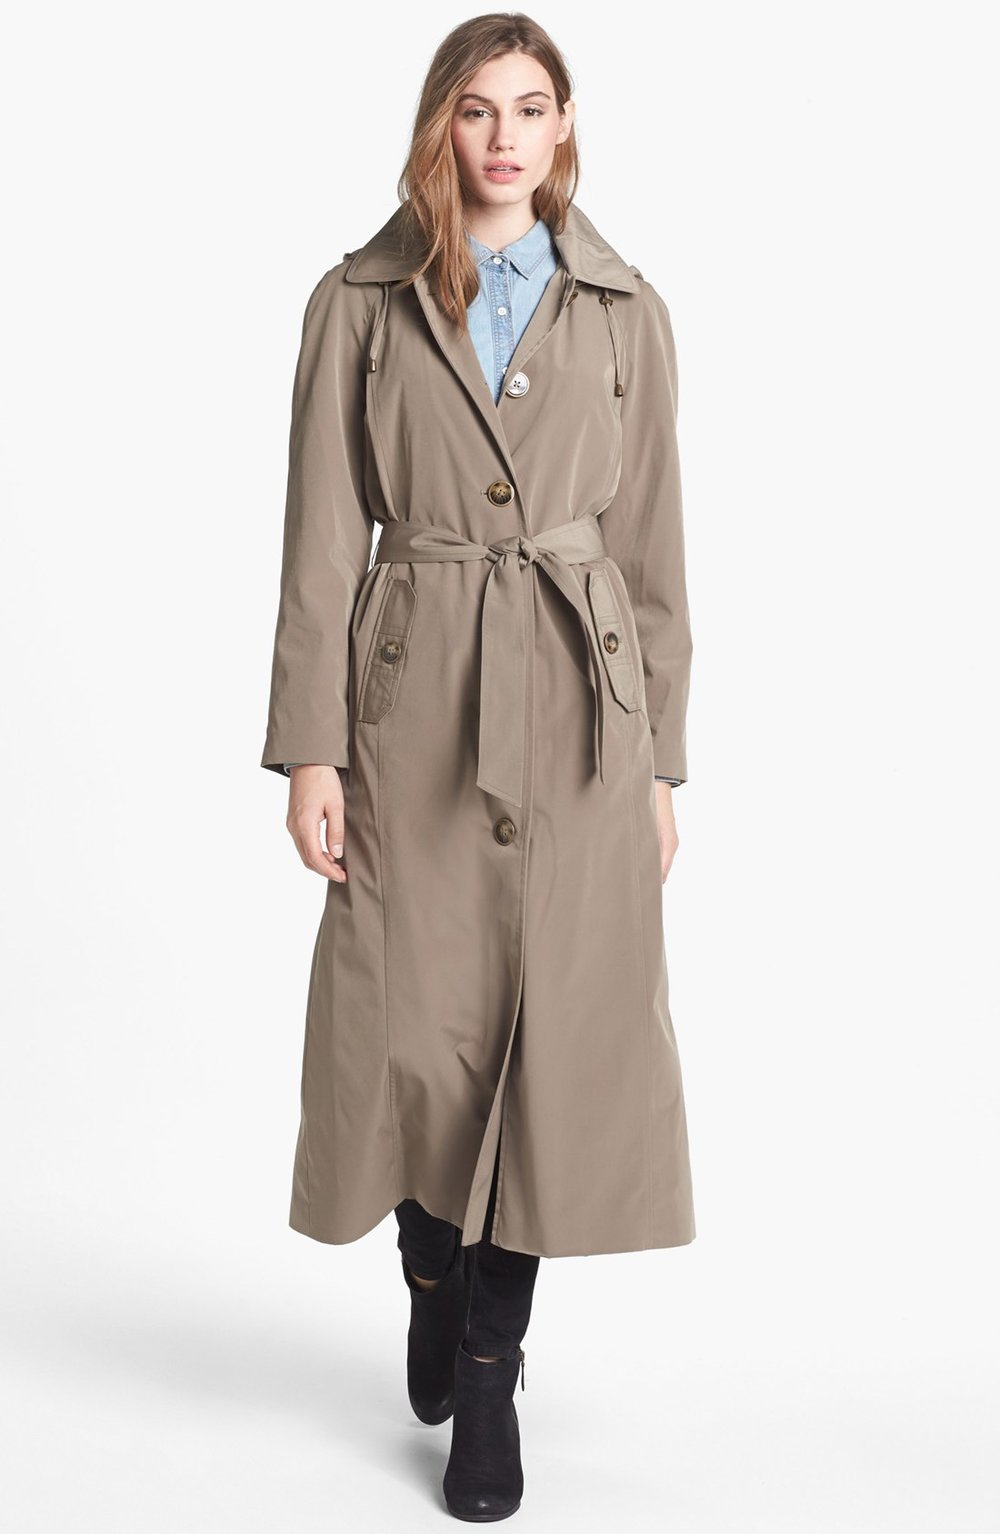 london-fog-hooded-trench-coat.jpg